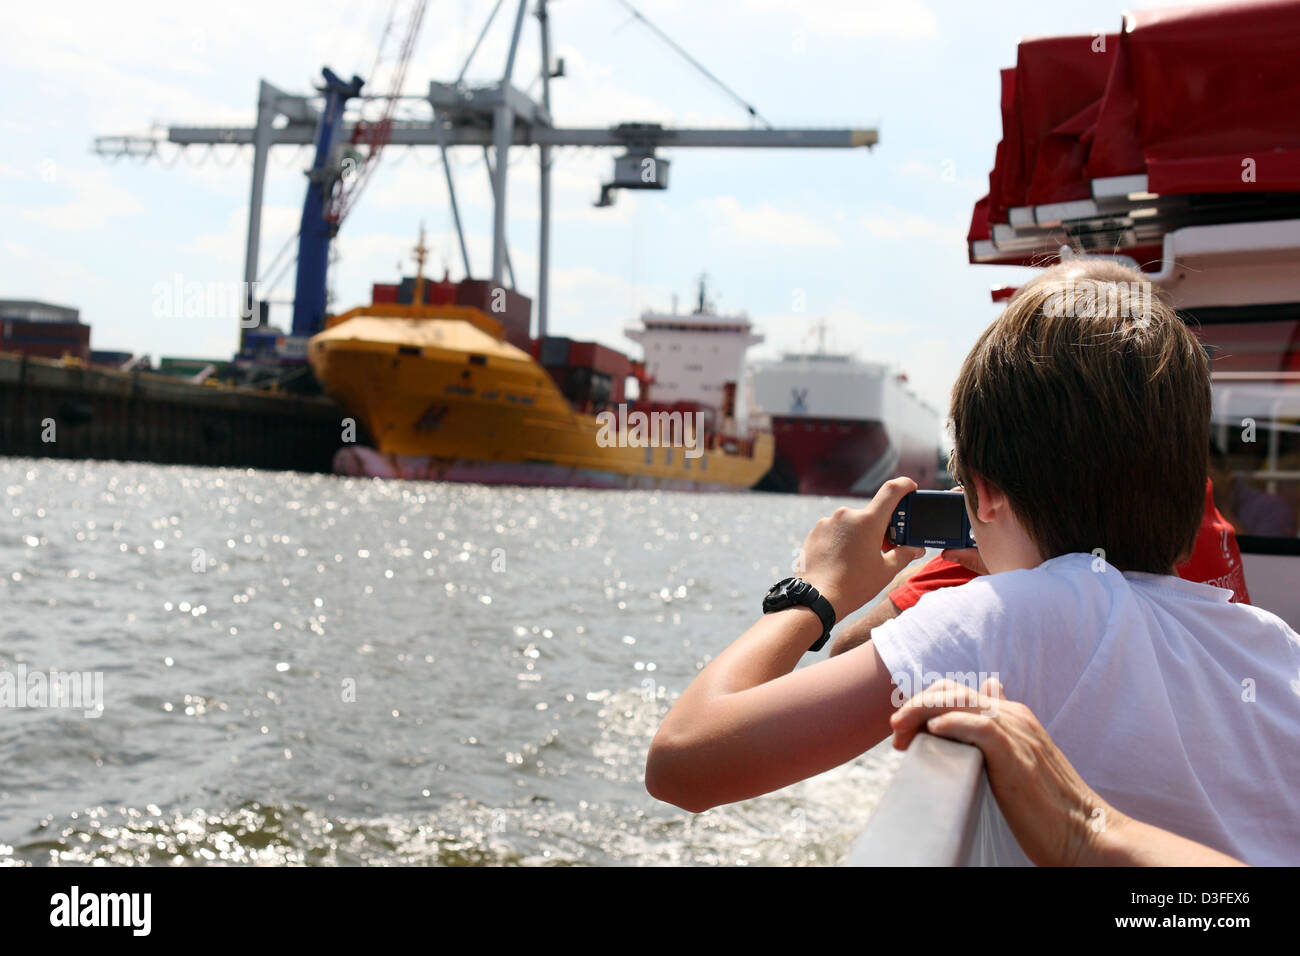 Hamburg, Germany, boy photographed a container ship in the Port of Hamburg - Stock Image